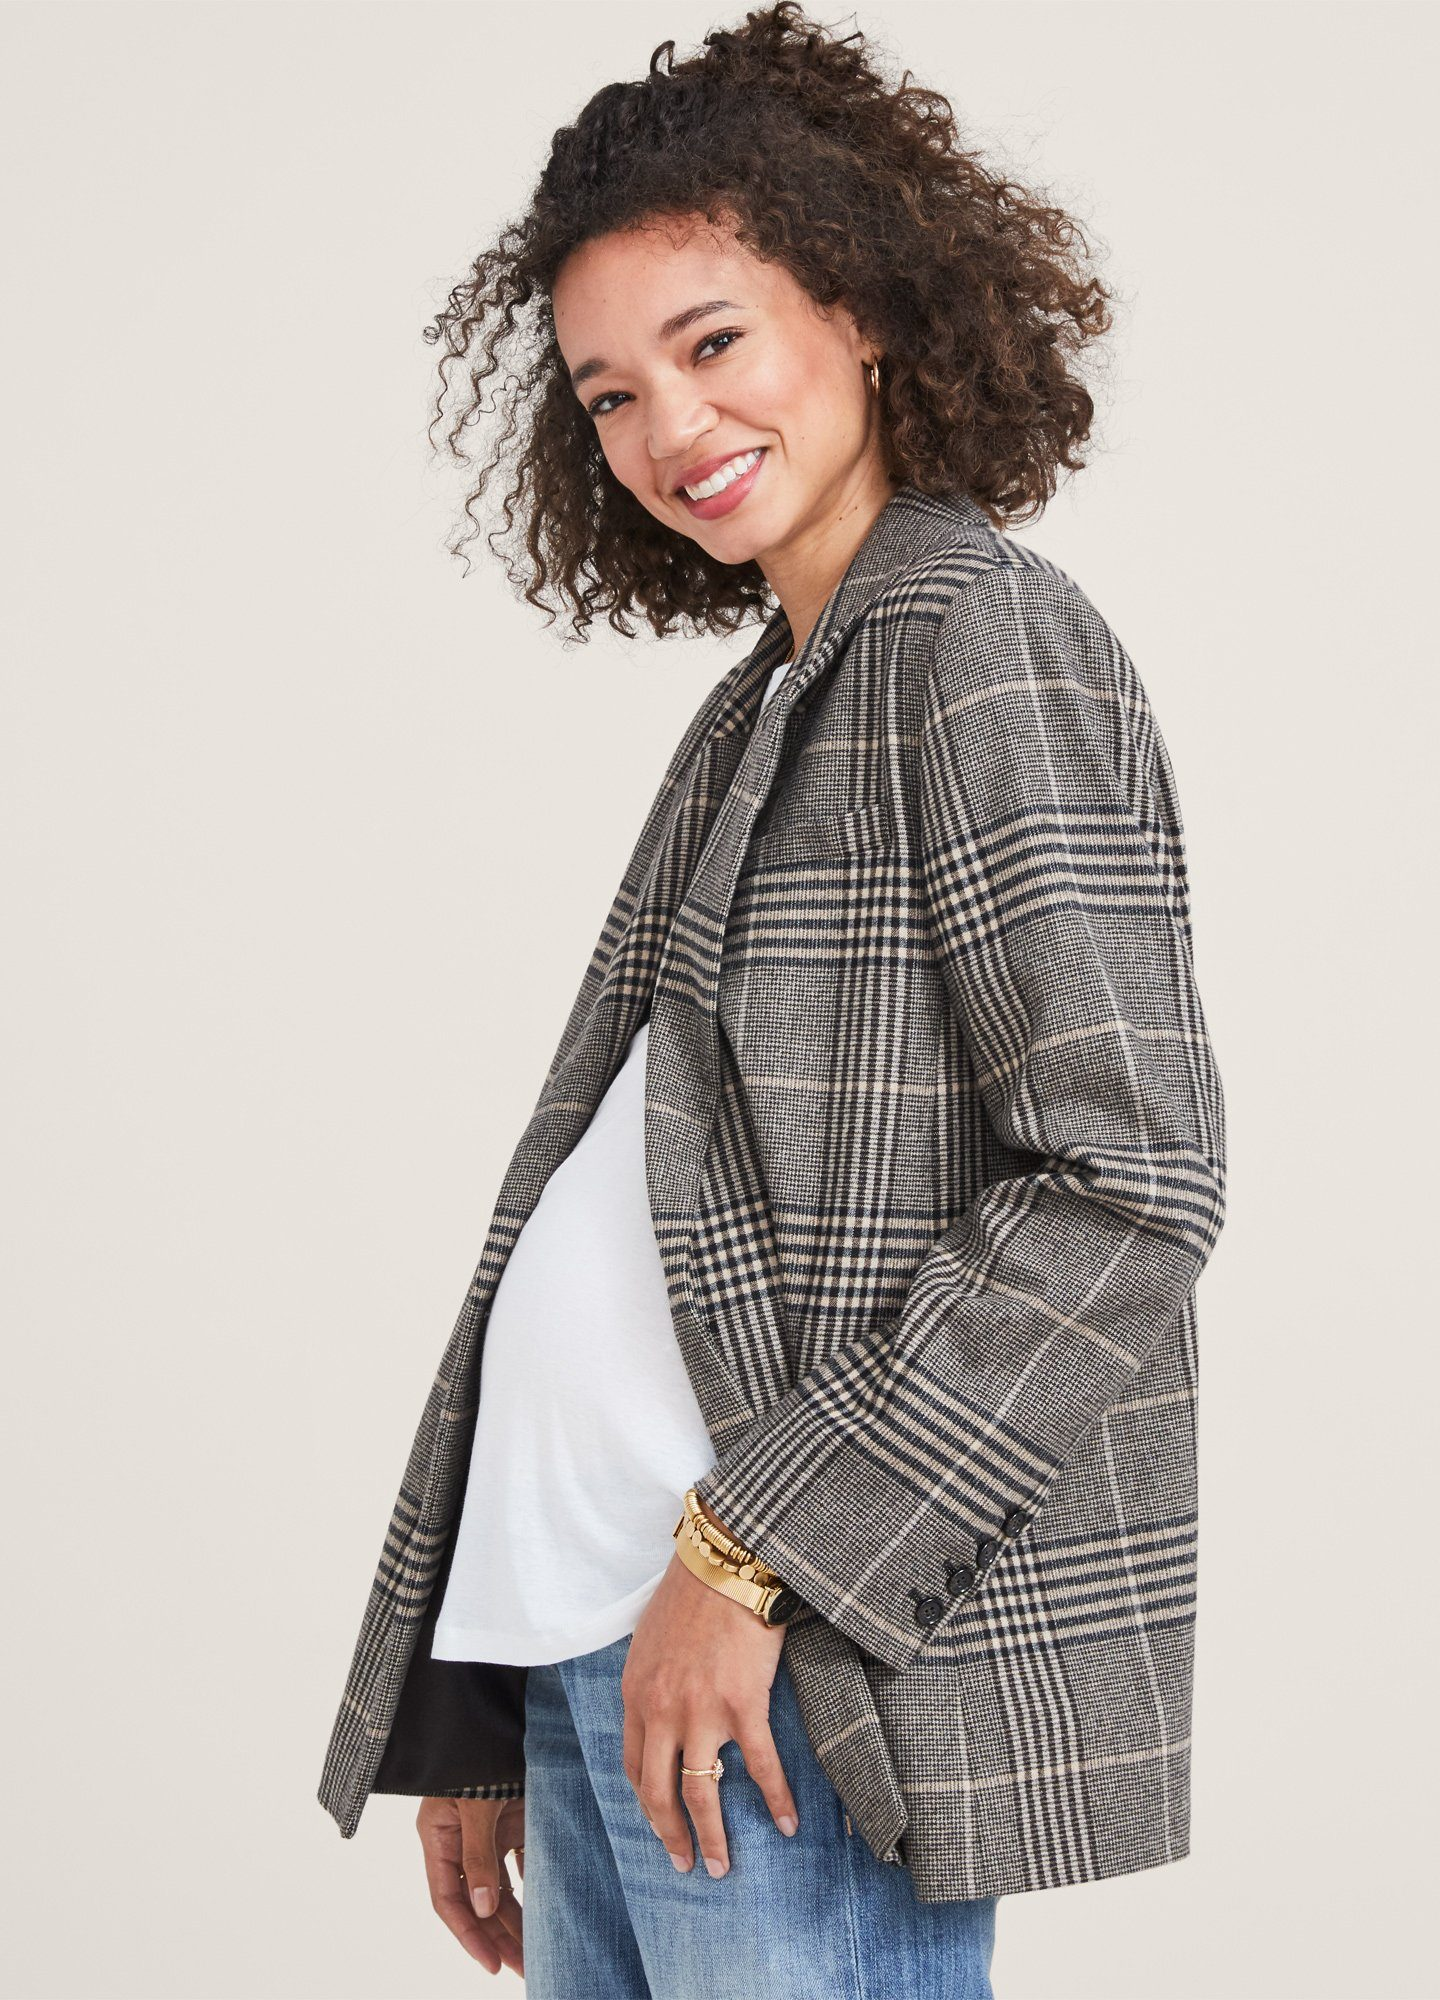 HATCH Maternity The Jane Blazer, camel Plaid, Size 2